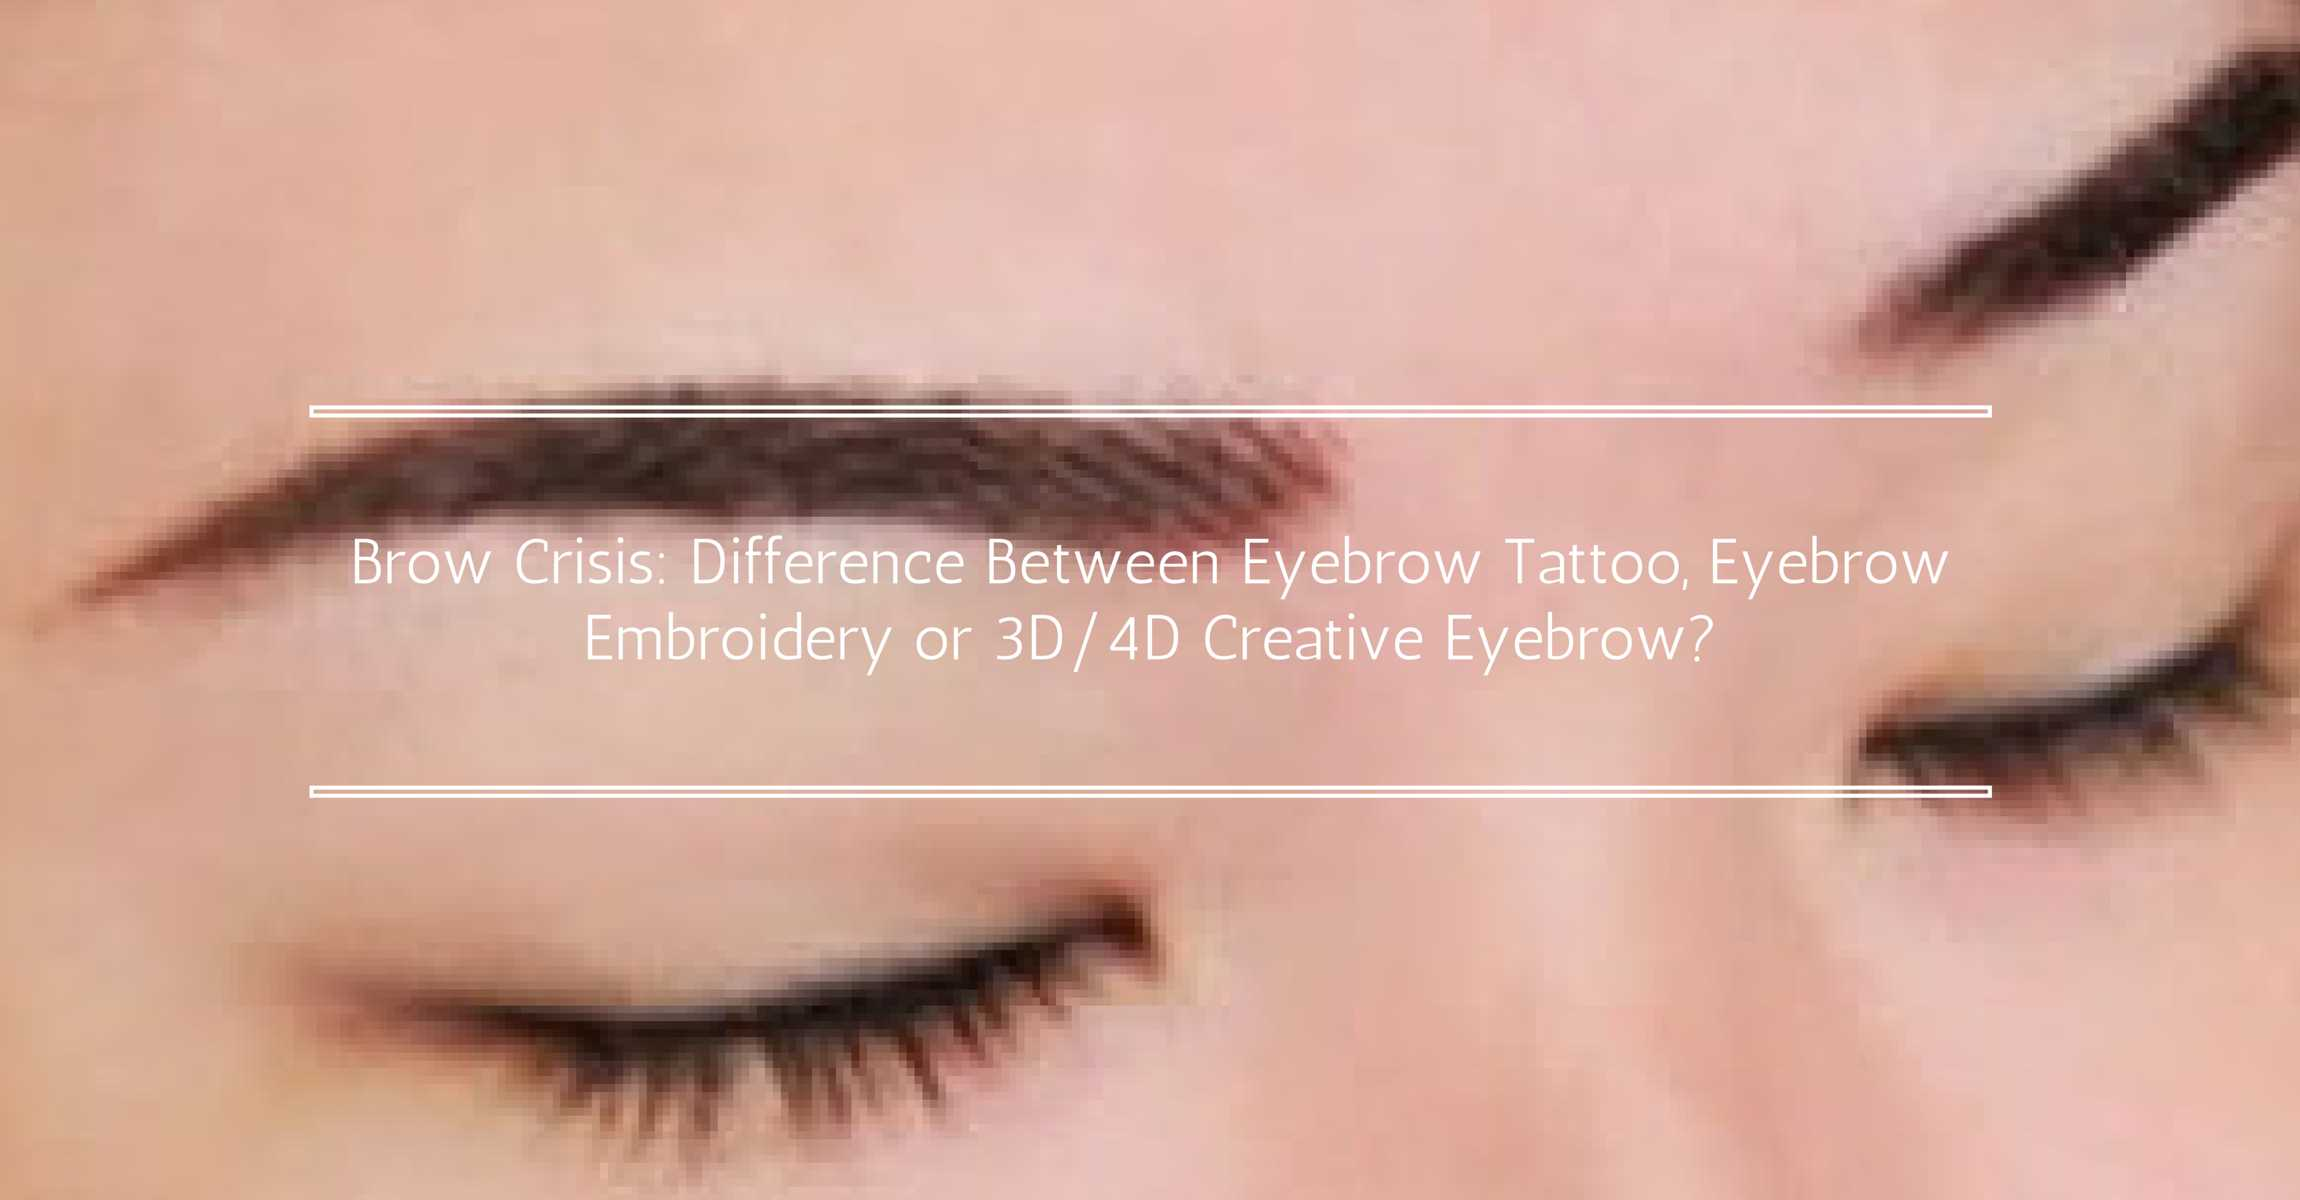 Eyebrow Tattoo Eyebrow Embroidery Or 3d4d Creative Eyebrow In